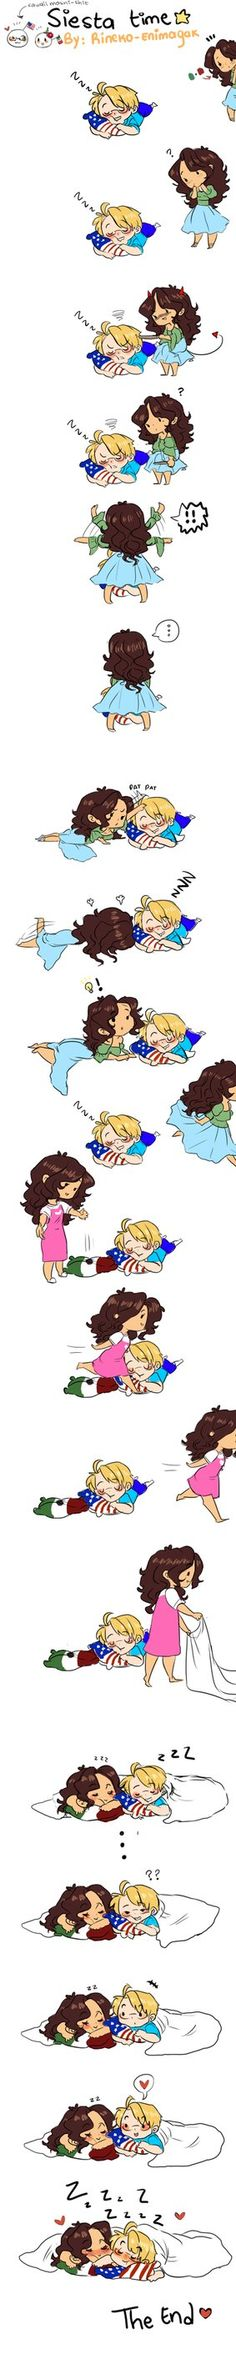 hetalia- Even though my Headcannon is different this is really cute